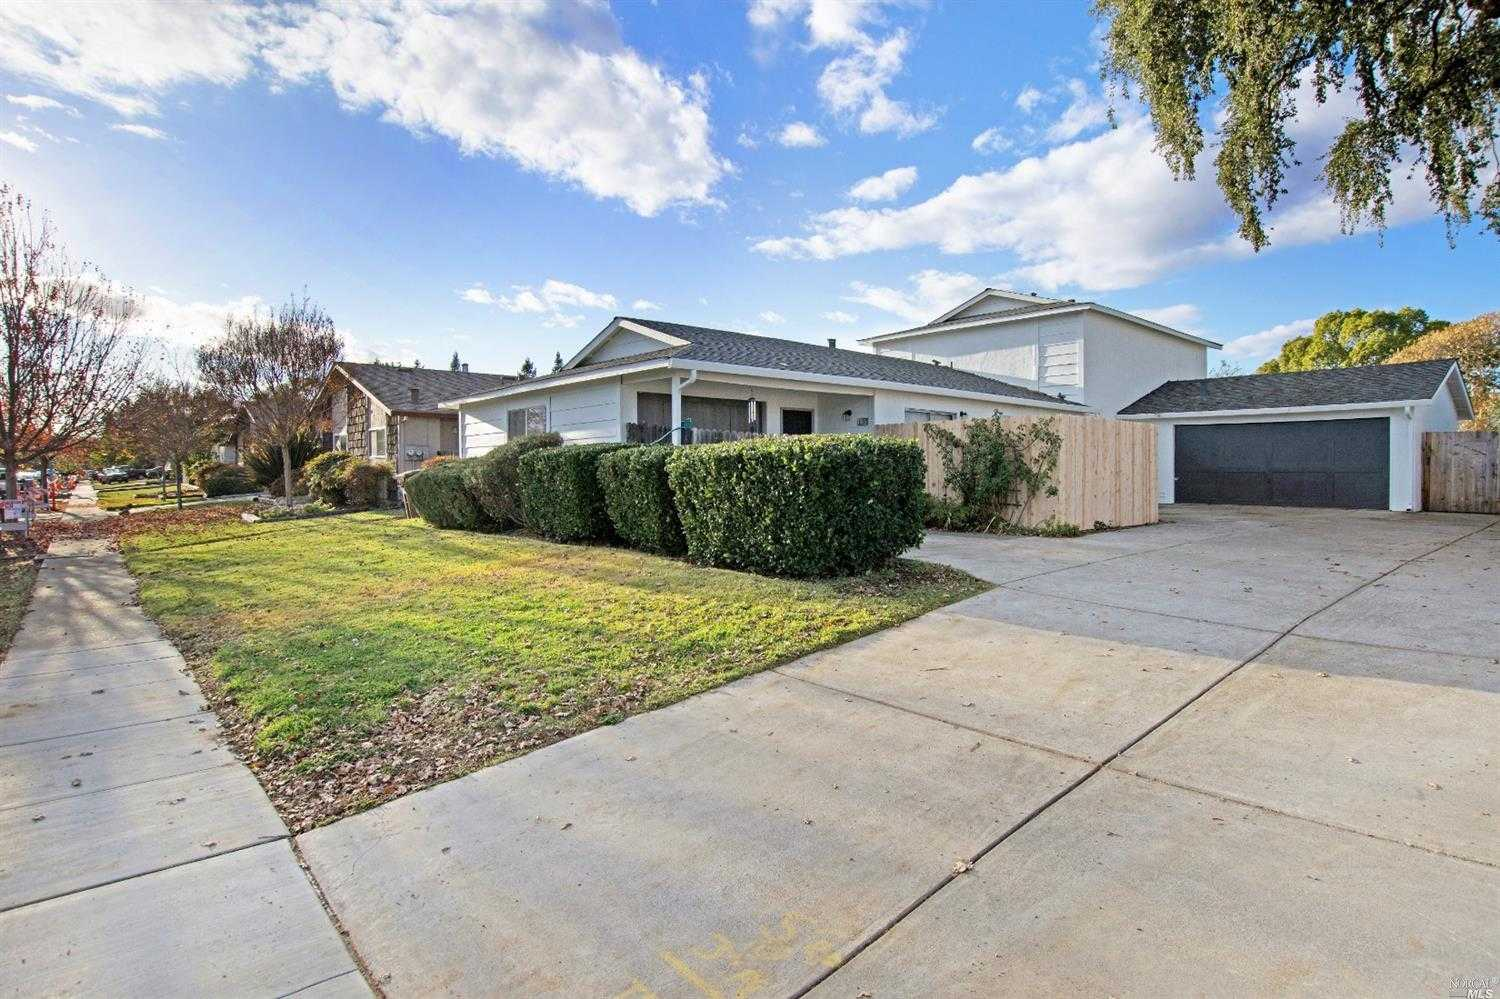 $699,000 - 6Br/4Ba -  for Sale in Napa